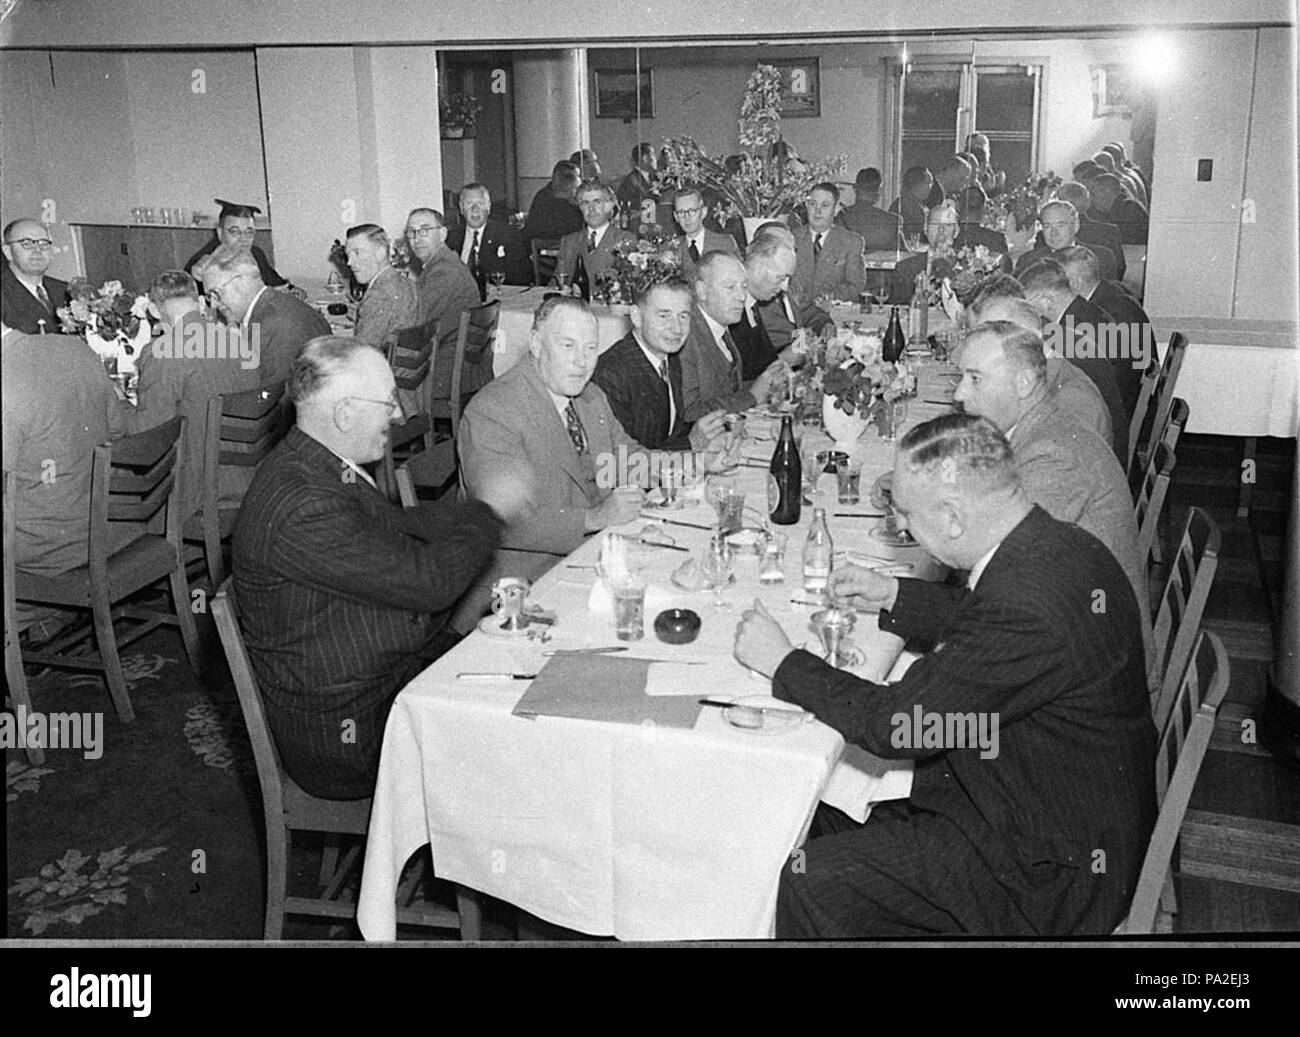 239 SLNSW 131898 Associated Bread Manufacturing Conference - Stock Image